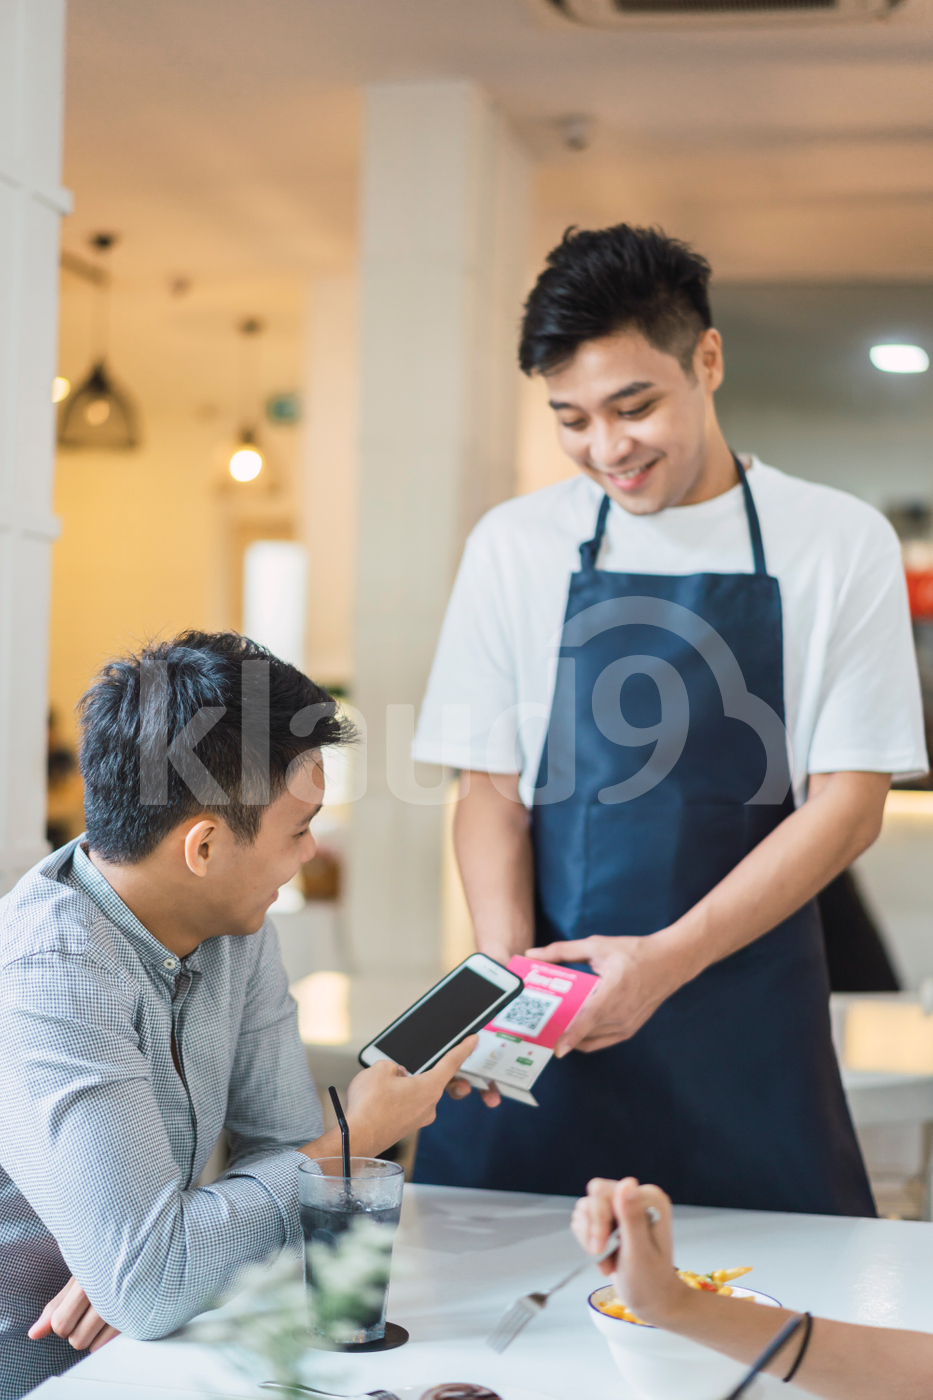 Young Asian man making payment with mobile at table